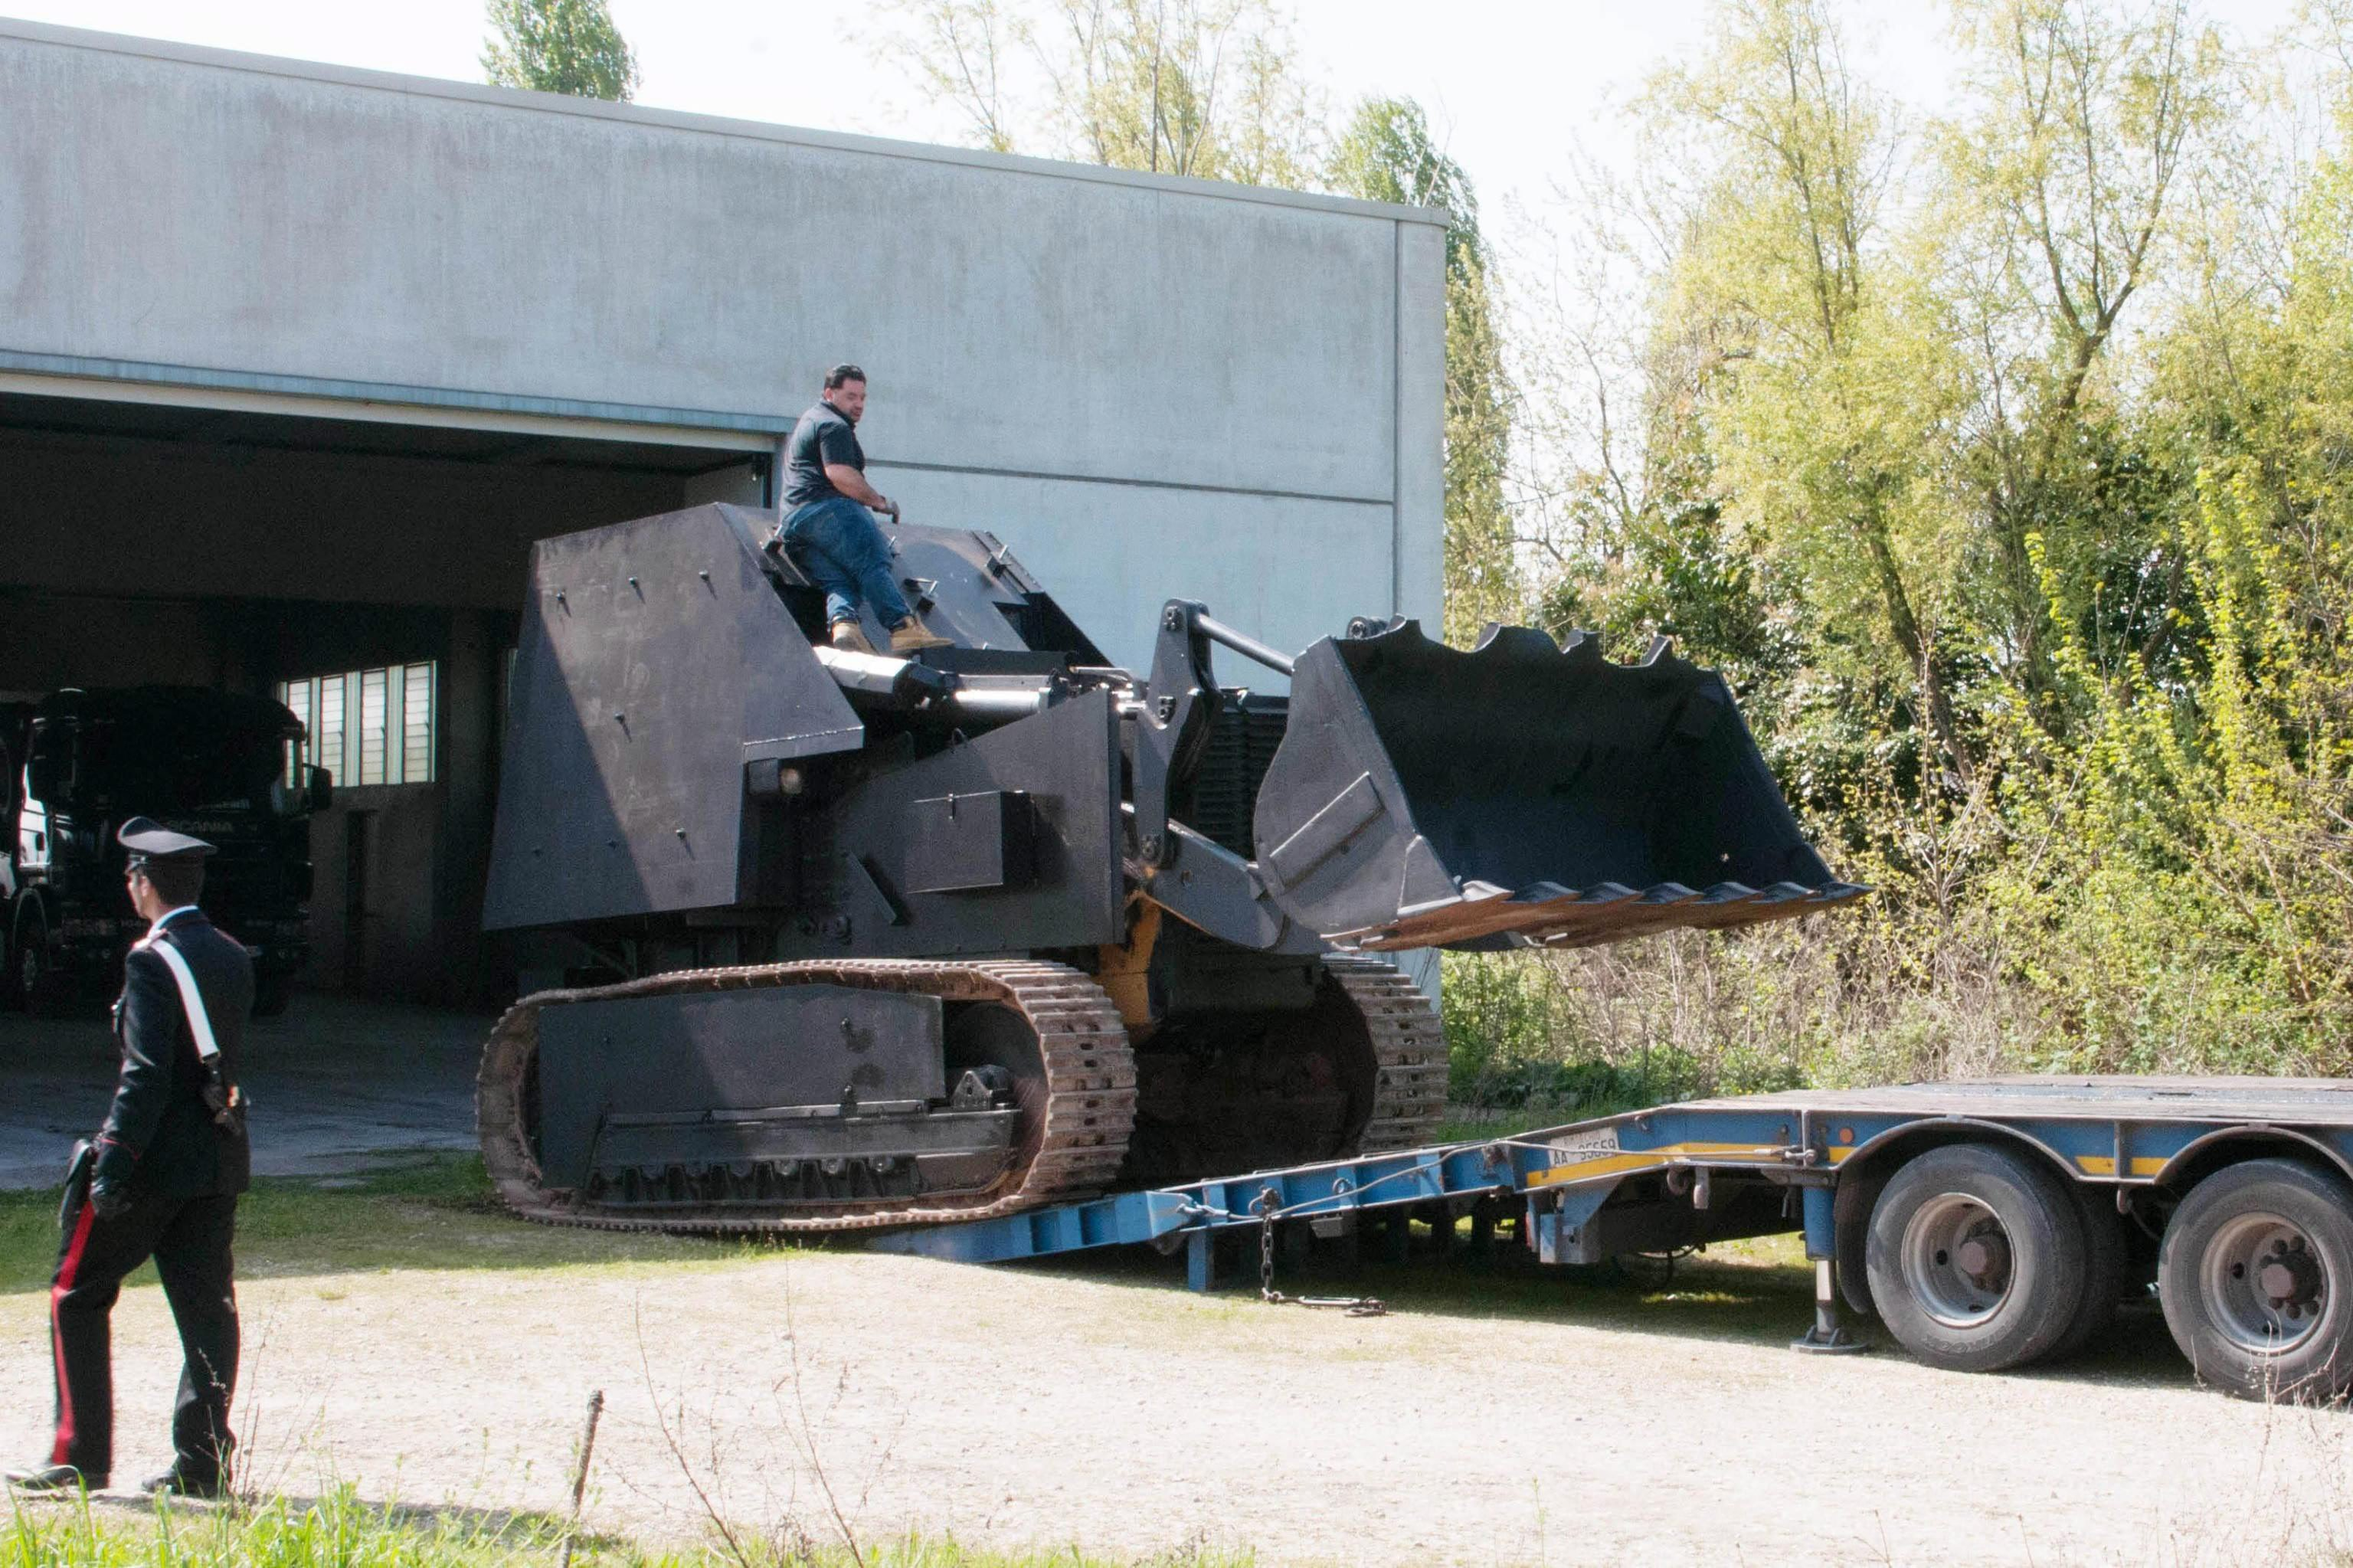 A tractor transformed into a tank is confiscated during an antiterrorism operation in Casale di Scodosia, Veneto region, Italy, on April 2, 2014.